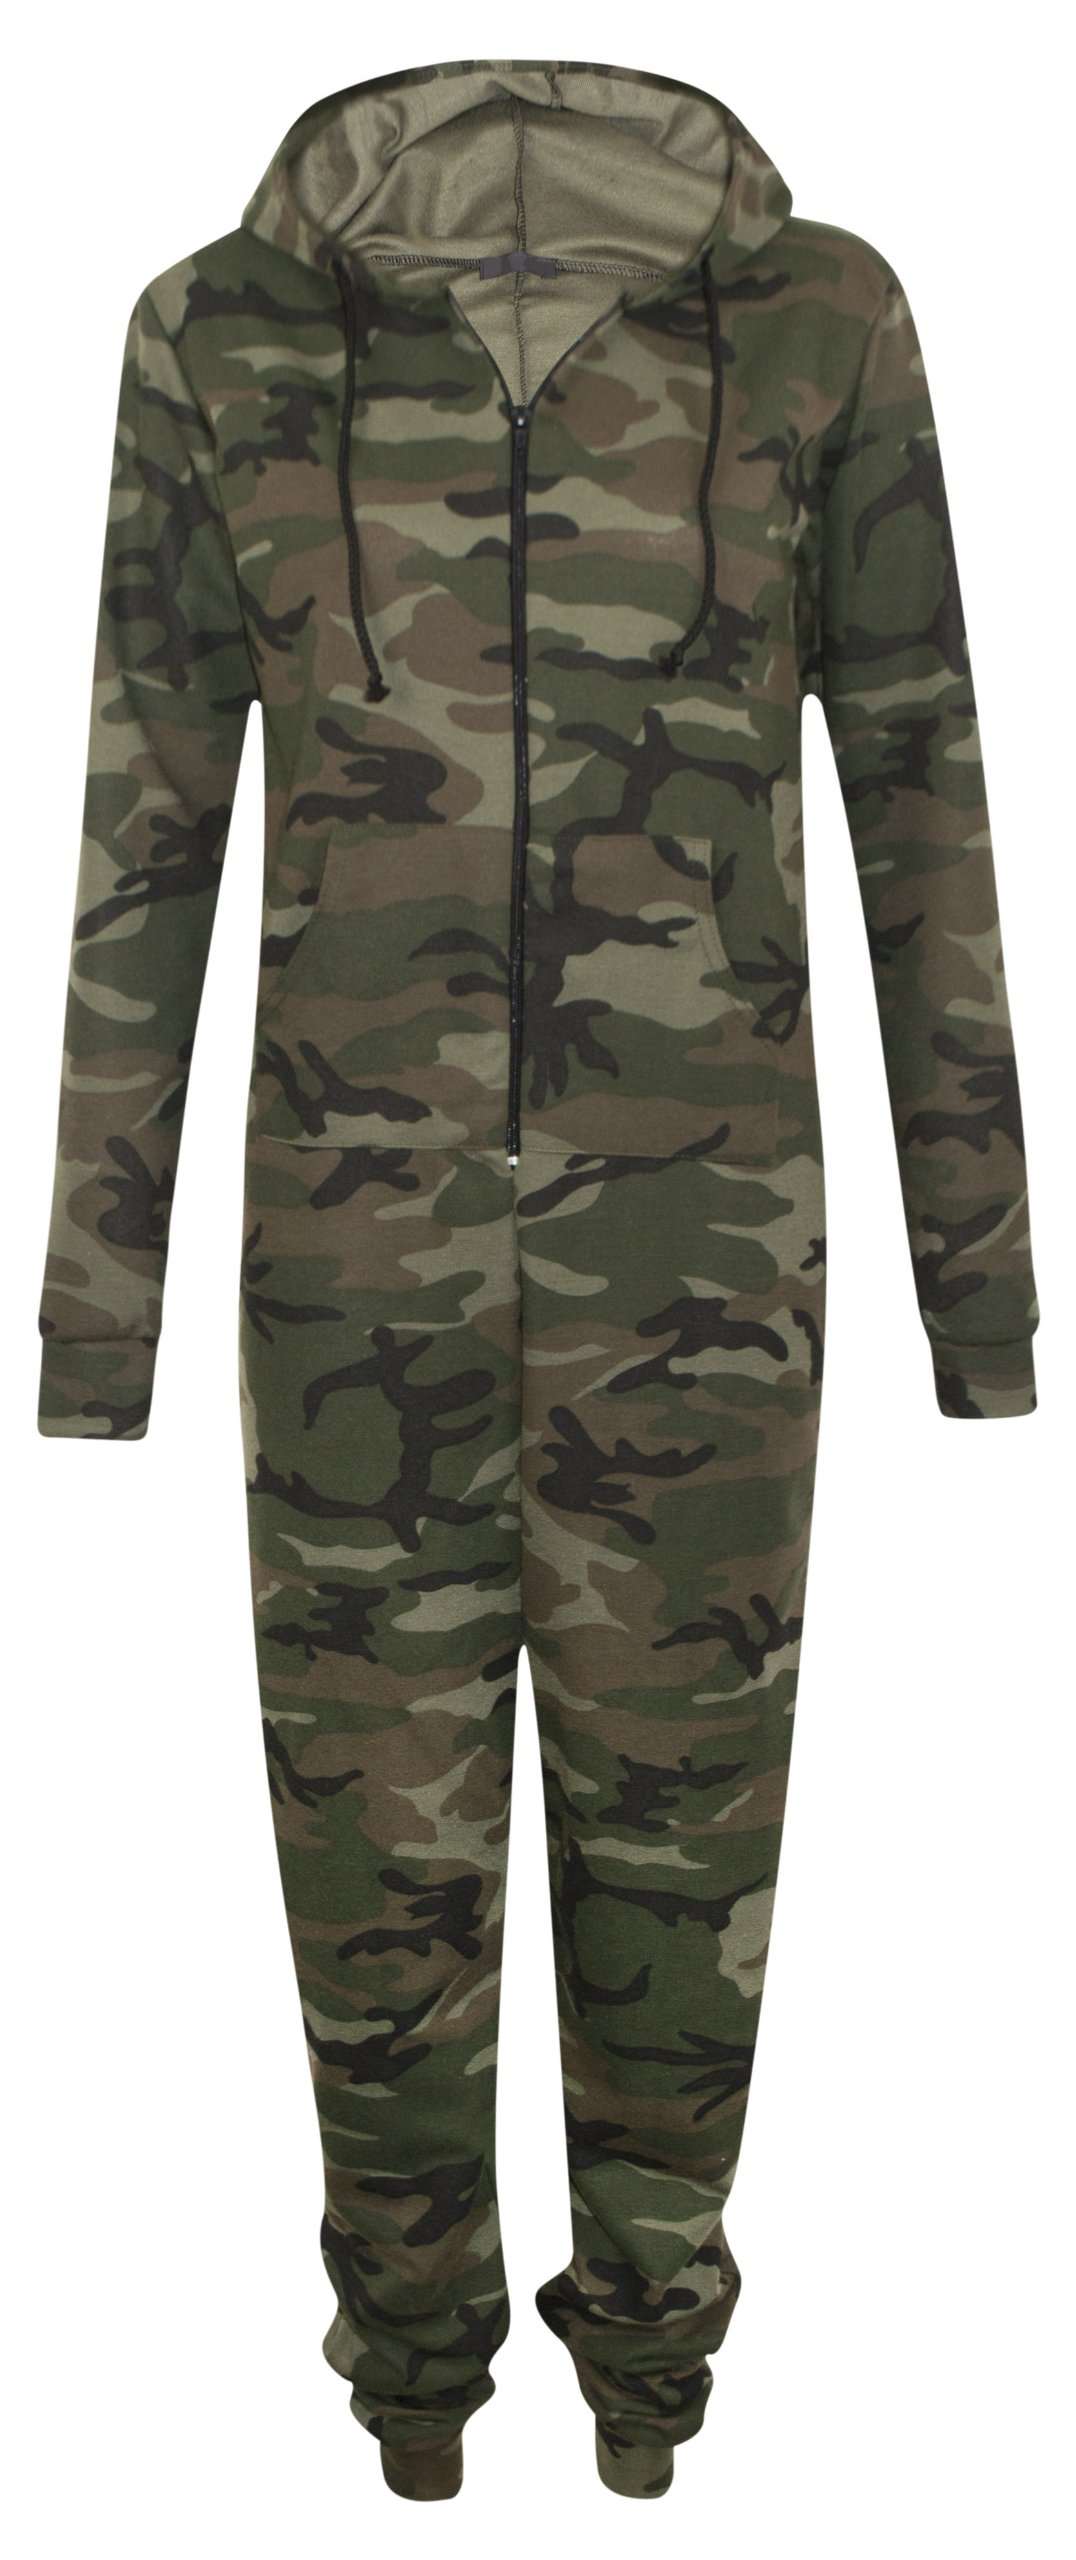 Womens Zip Up Hooded Camouflage Army Celeb Rihanna All In One Jumpsuit Onesie